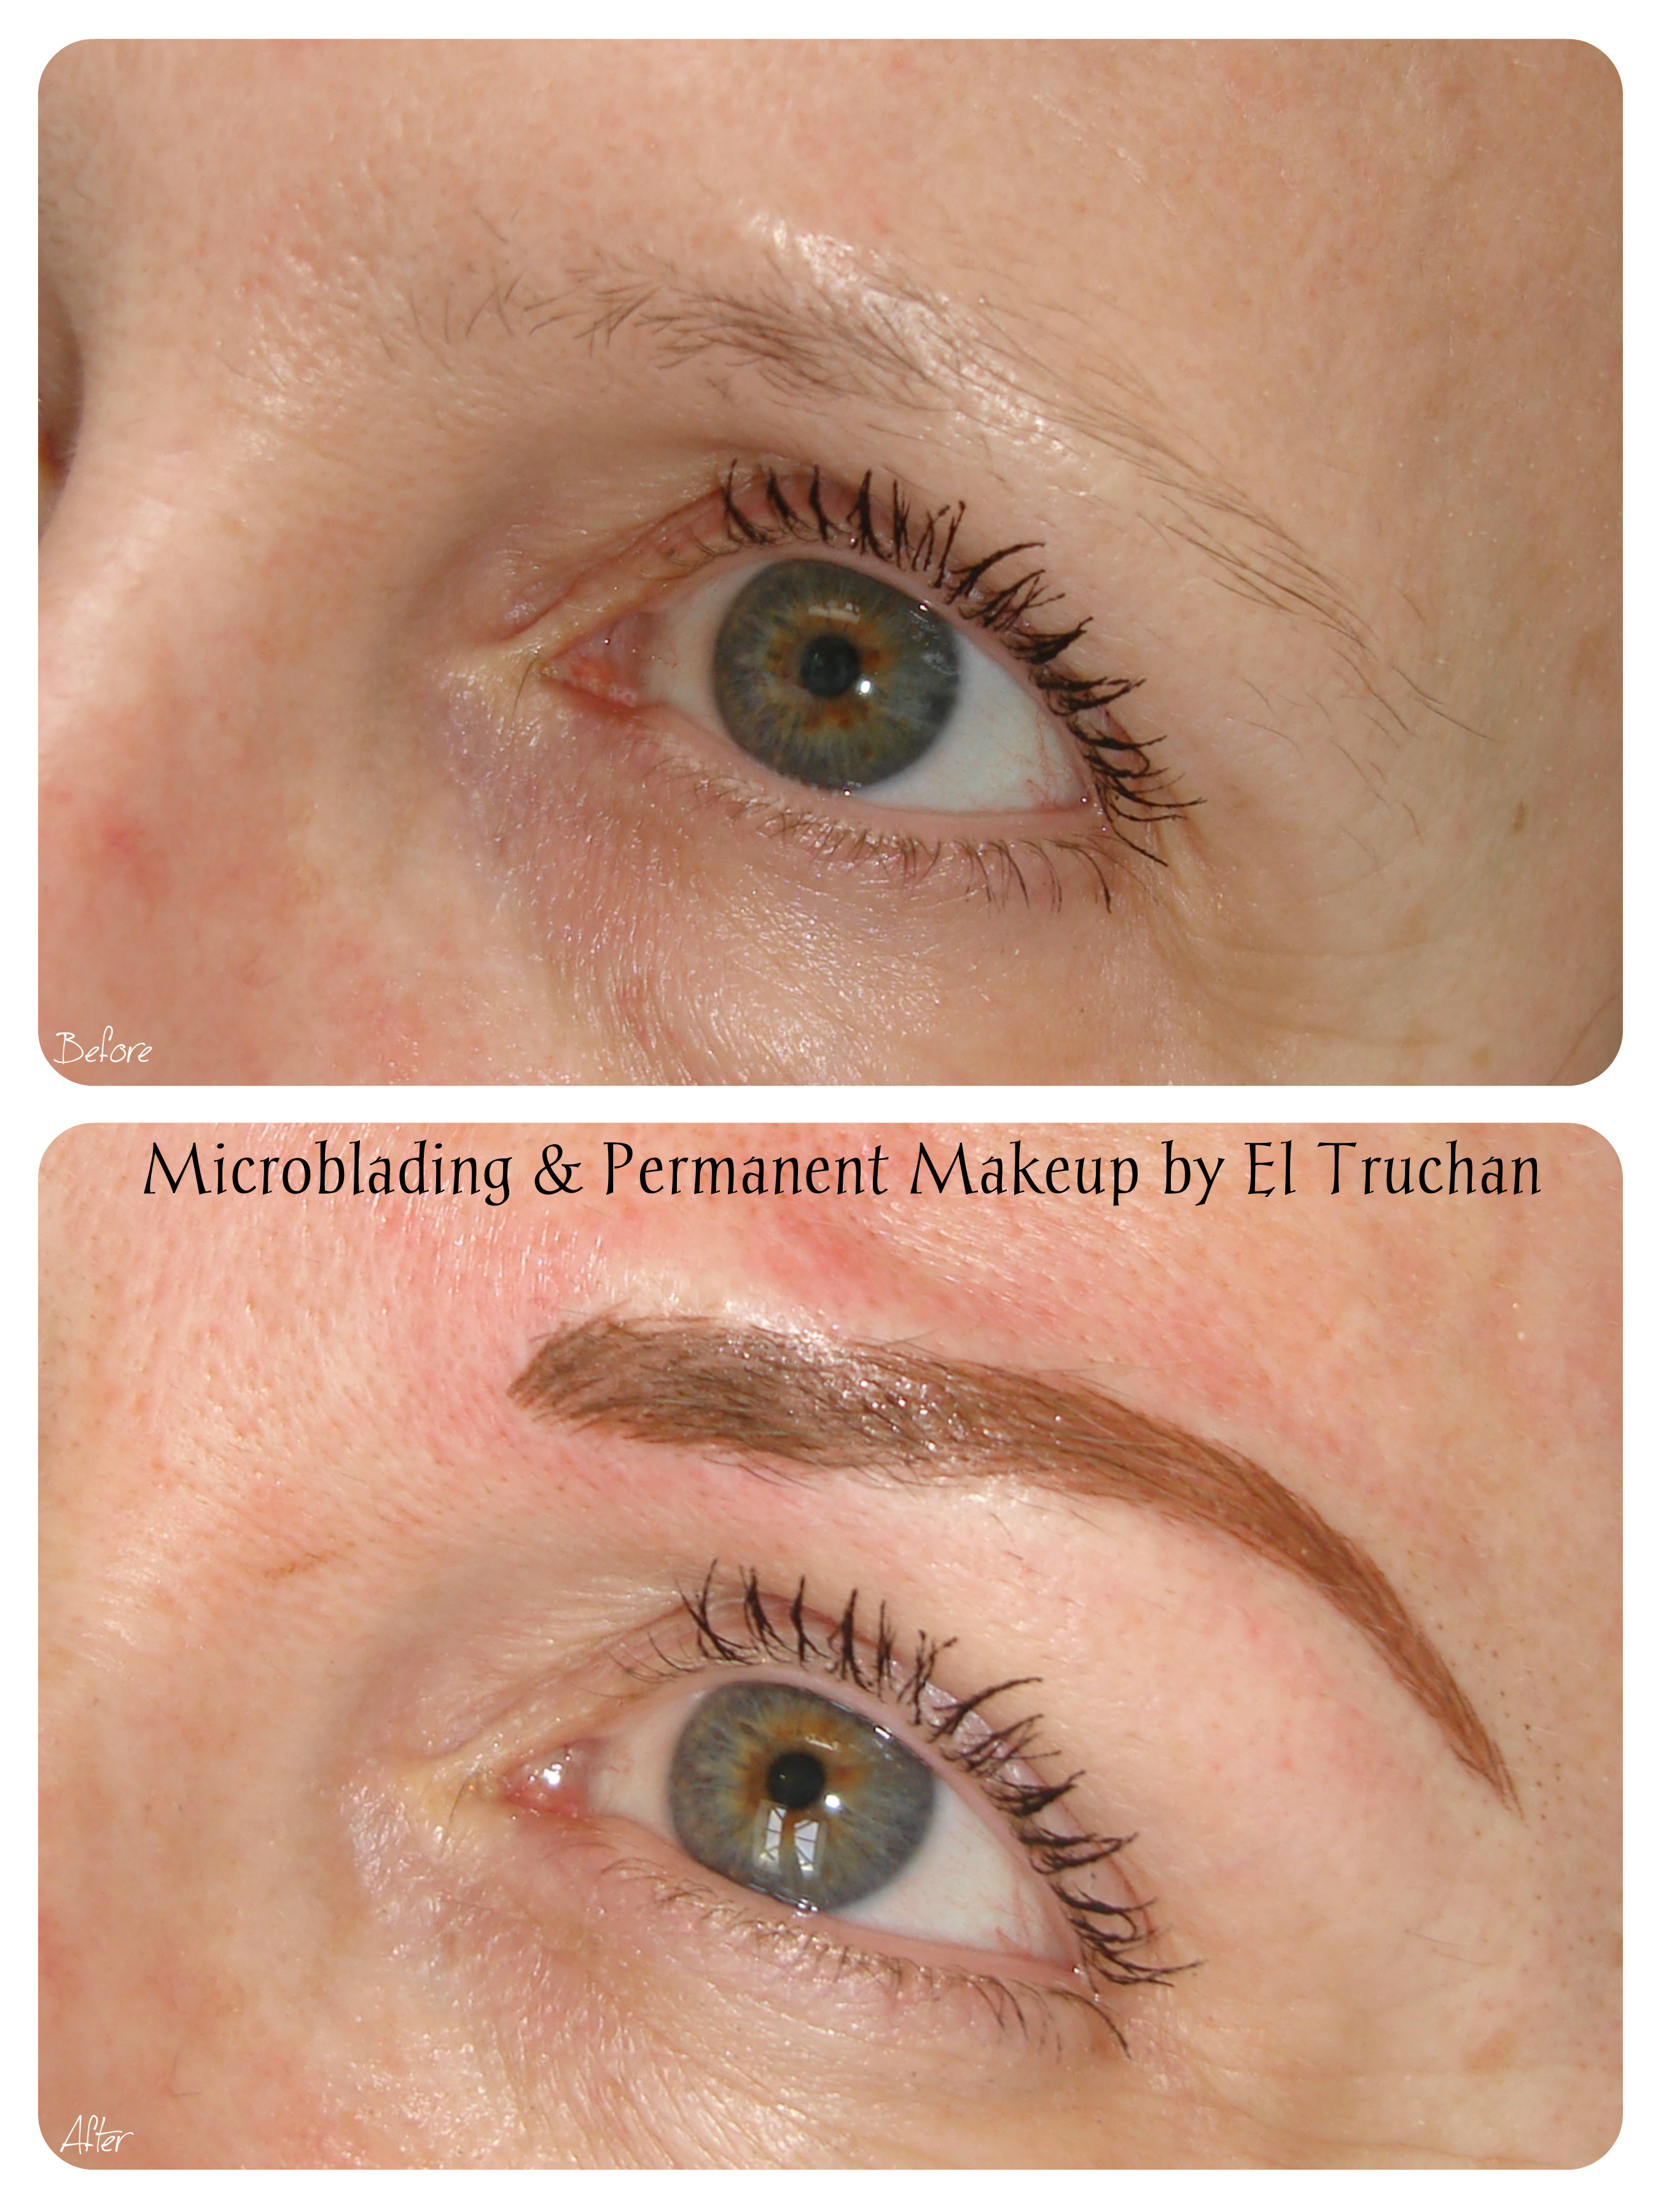 Combination brow Microblading & PMU by El Truchan